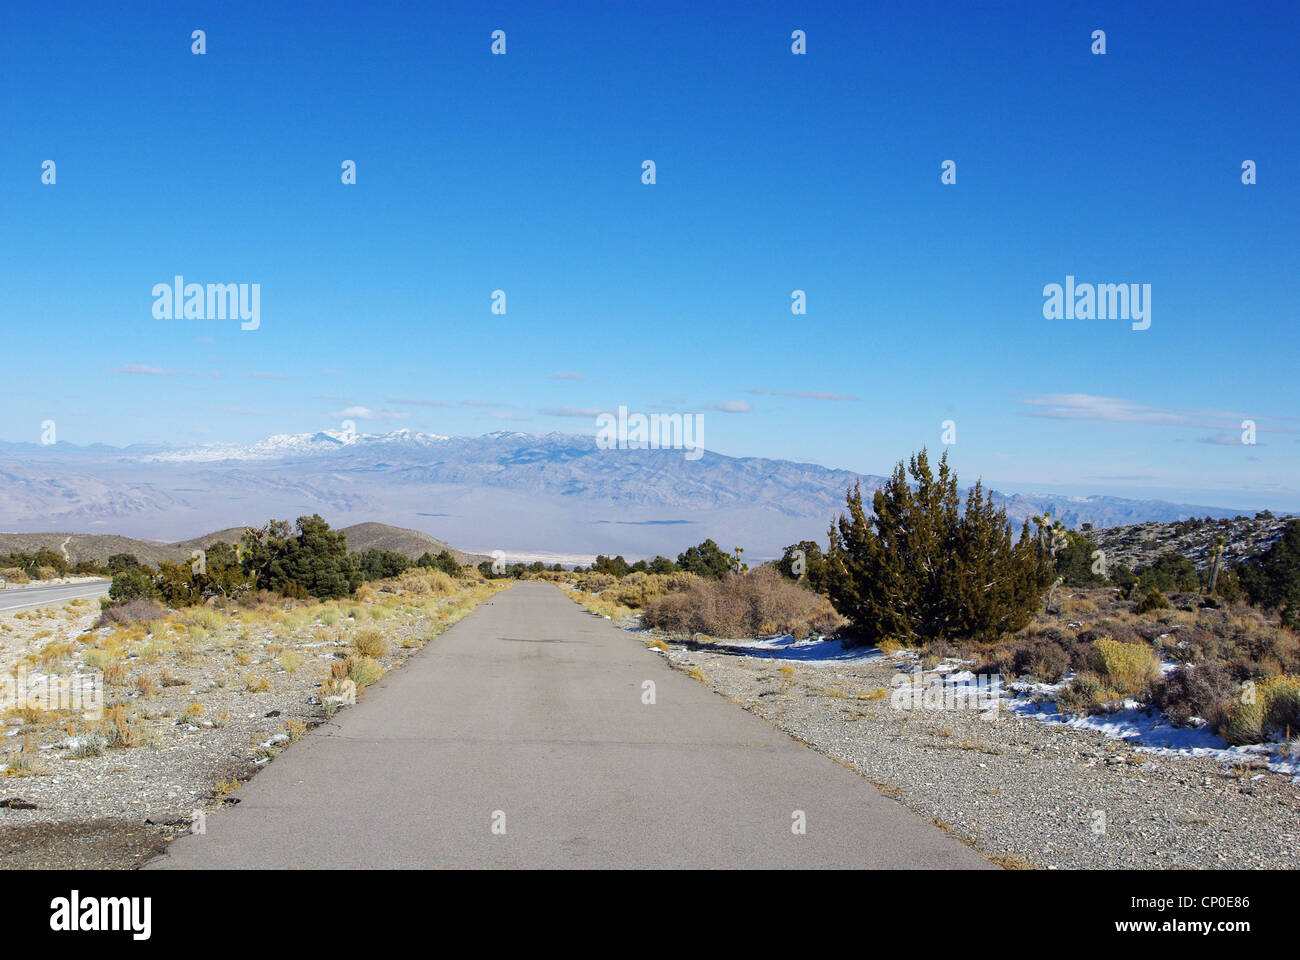 Vast desert and mountain view coming down from Mount Charleston, Nevada - Stock Image